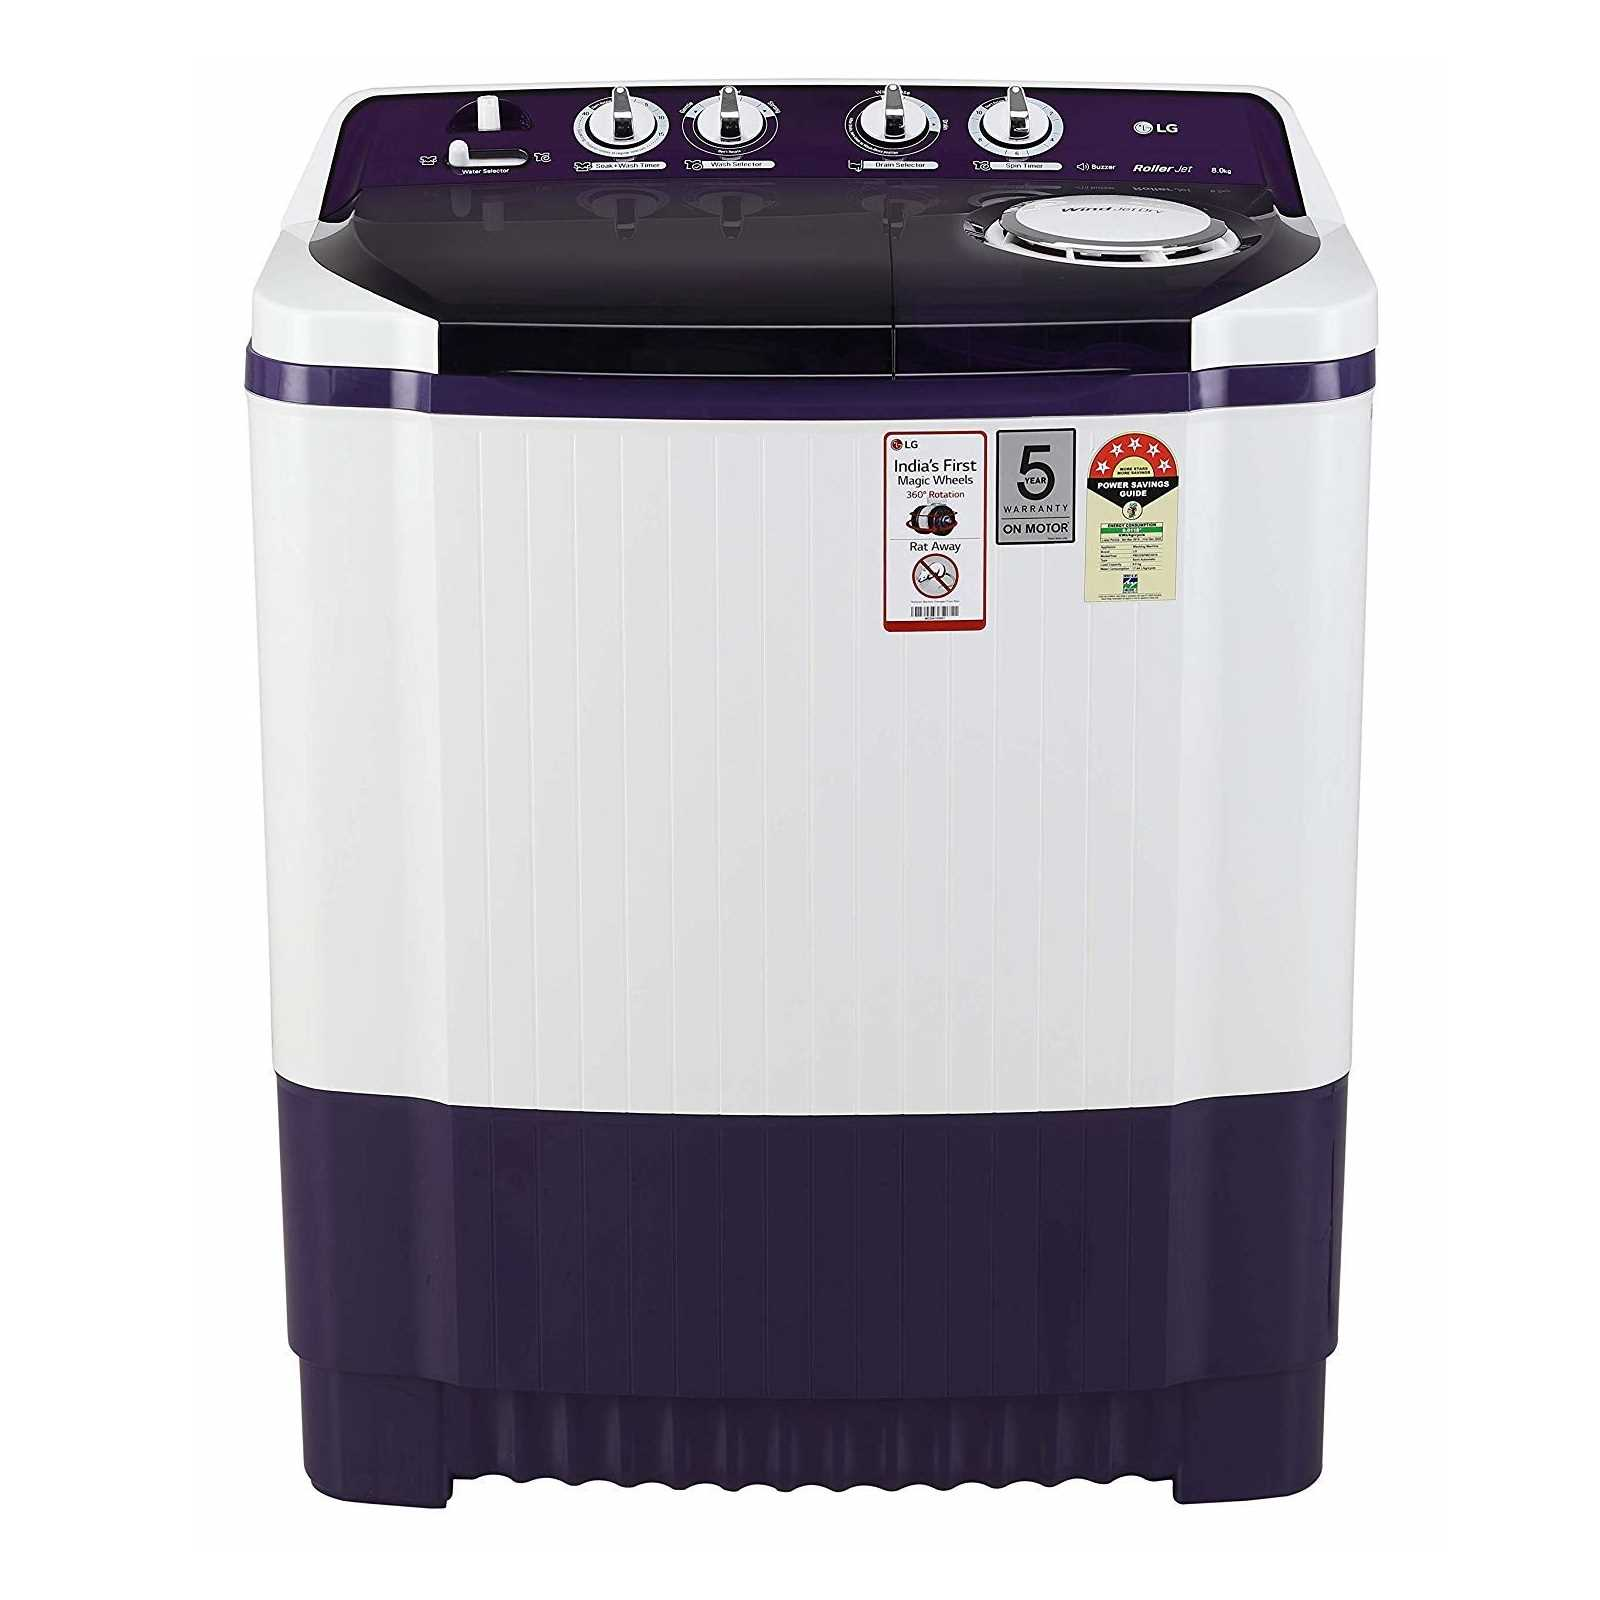 LG P8035SPMZ 8 Kg Semi Automatic Top Loading Washing Machine